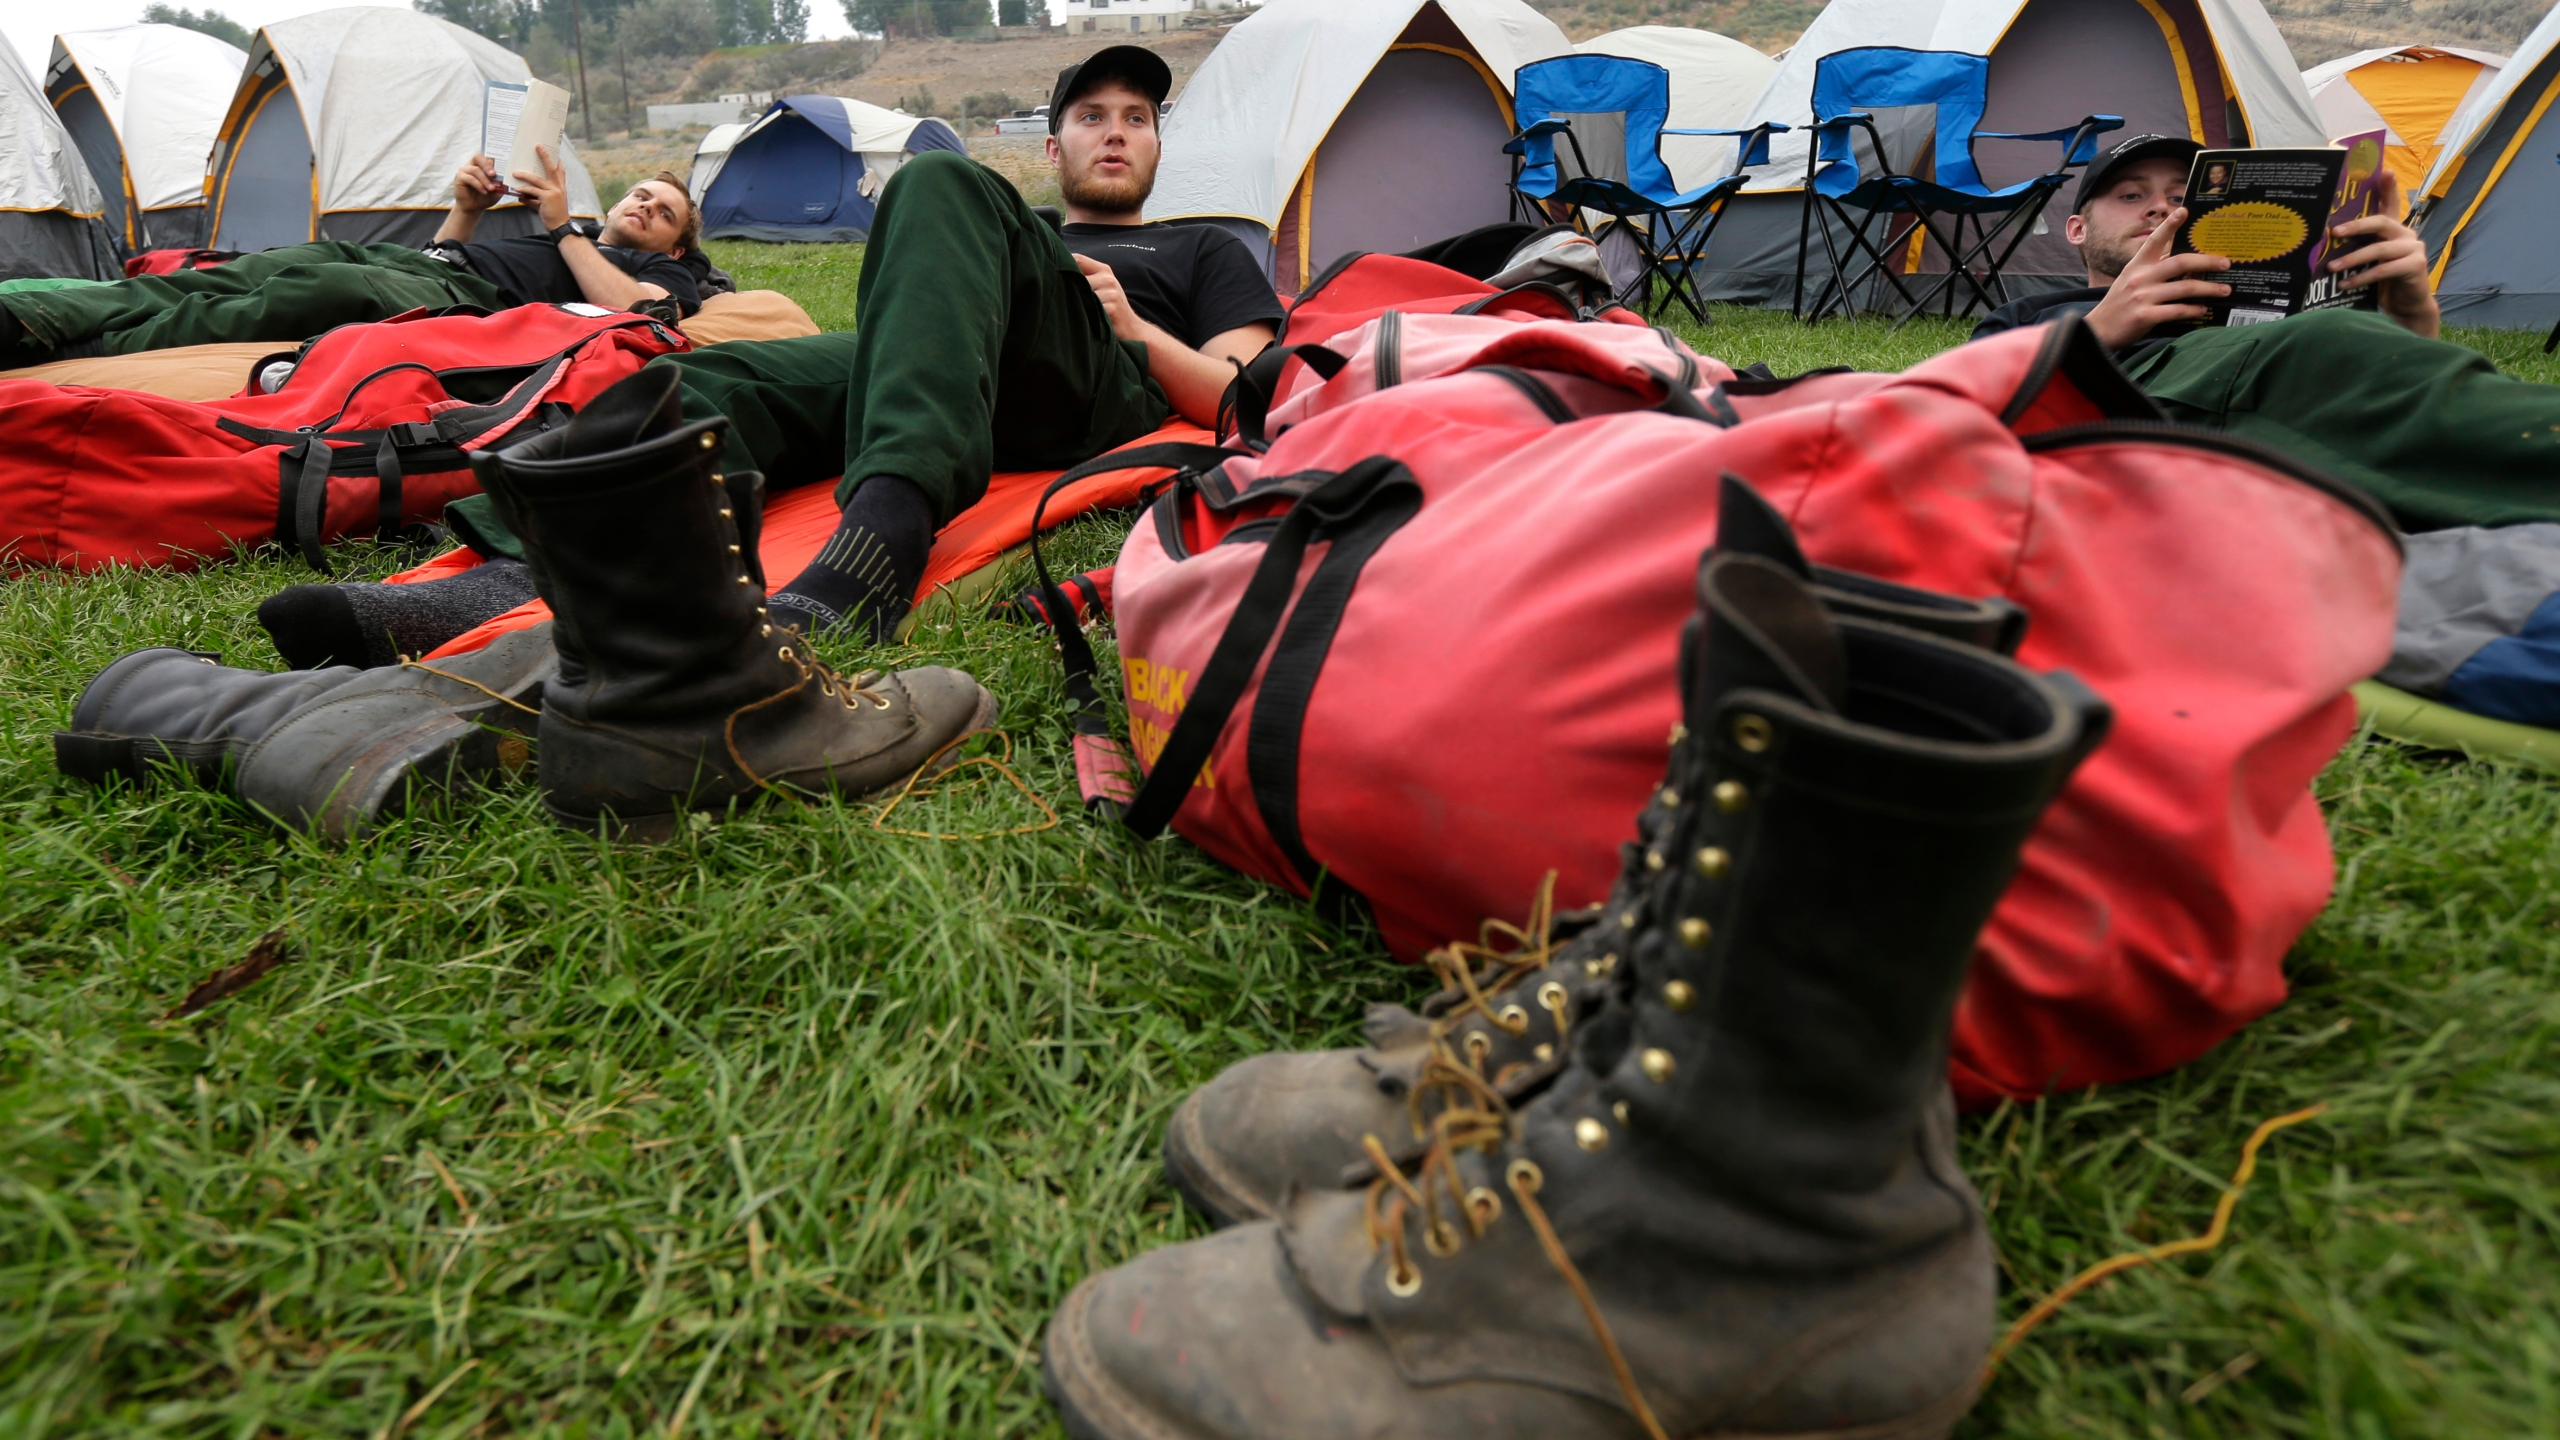 In this Aug. 25, 2015, file photo, Mac Mega, center, rests with fellow firefighters from Oregon-based Grayback Forestery, at a camp for firefighters battling the Okanogan Complex Fire in Okanogan, Wash. Empty cow pastures on one day can be bustling with hundreds of firefighters the next as fire camps with colorful tent cities spring up. Truckloads of supplies and equipment are needed to keep wildland firefighters effective at fighting flames for weeks on end. The size of each camp is determined by the size and complexity of the wildfire. (AP Photo/Ted S. Warren, File)